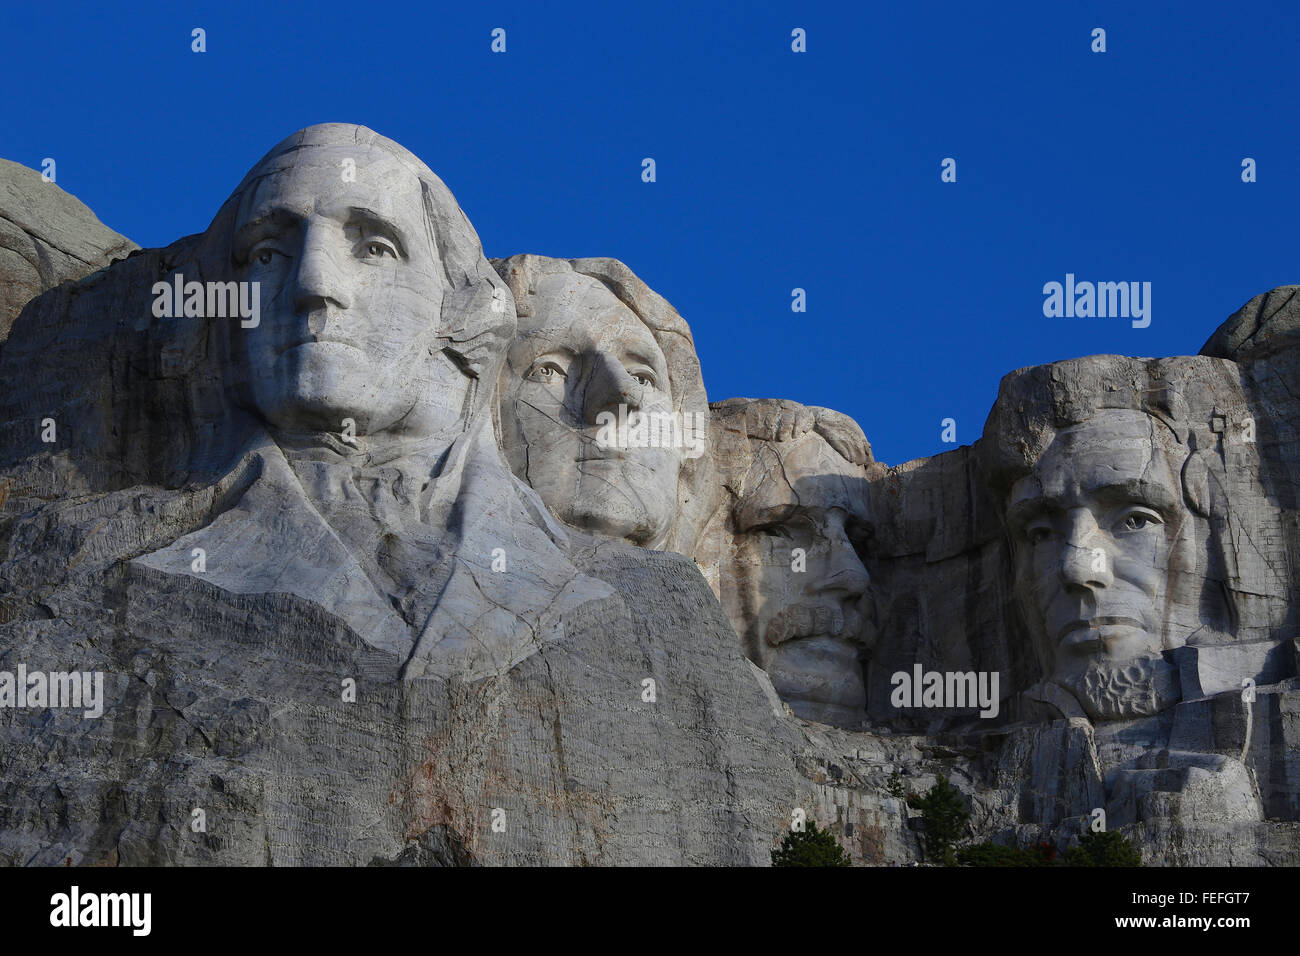 Mount Rushmore National Memorial clear blue sky - Stock Image